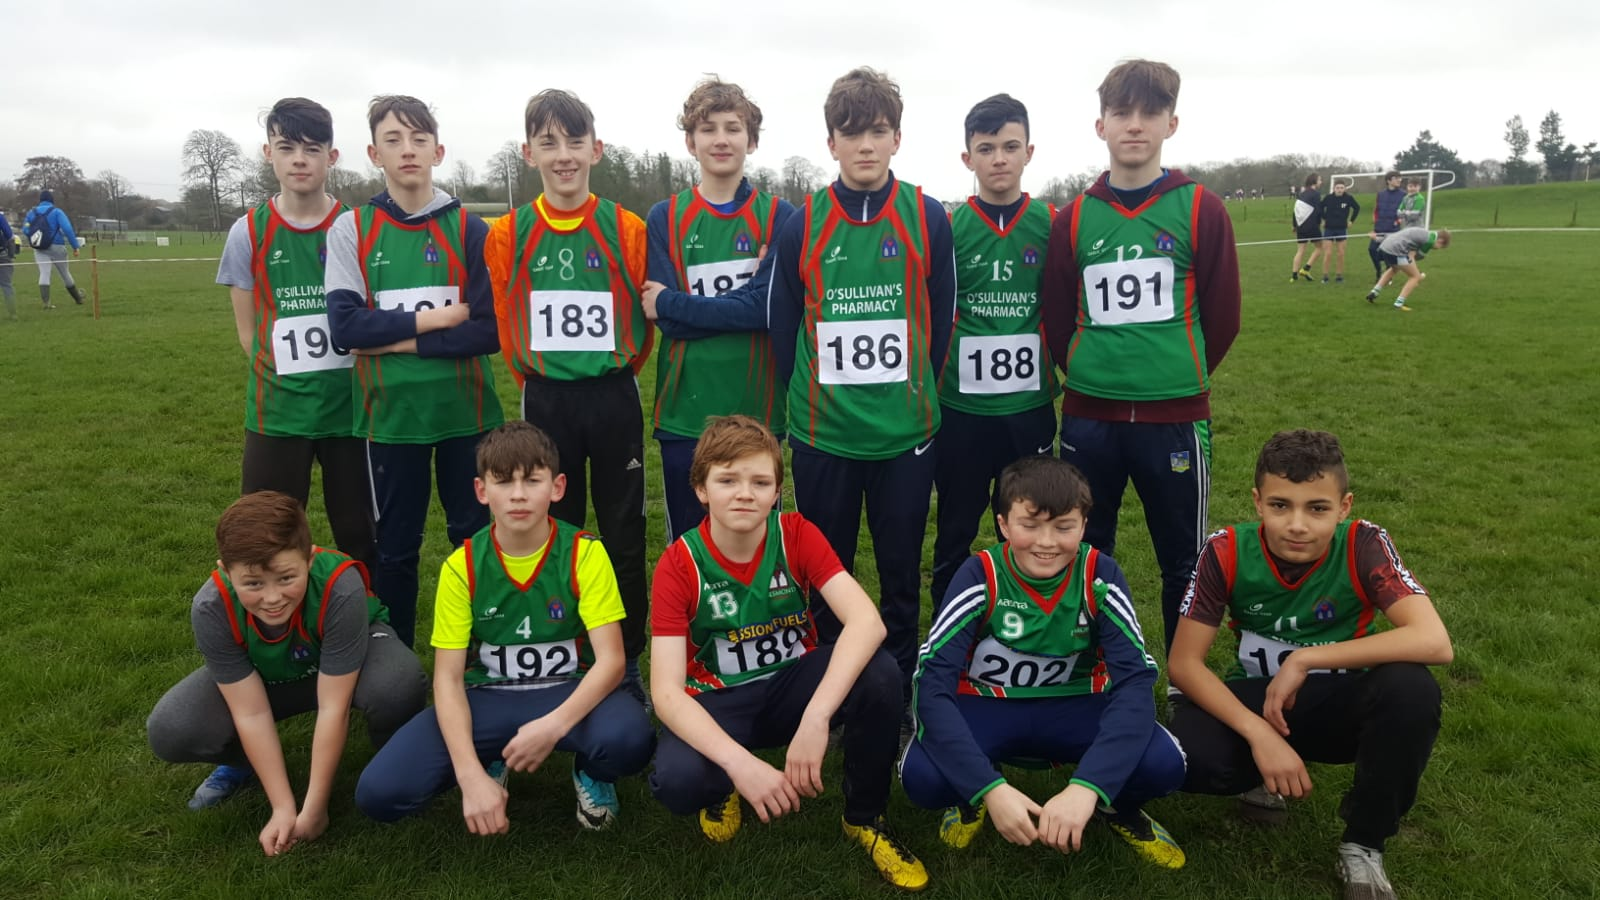 Desmond College students who participated in the North Munster Cross Country